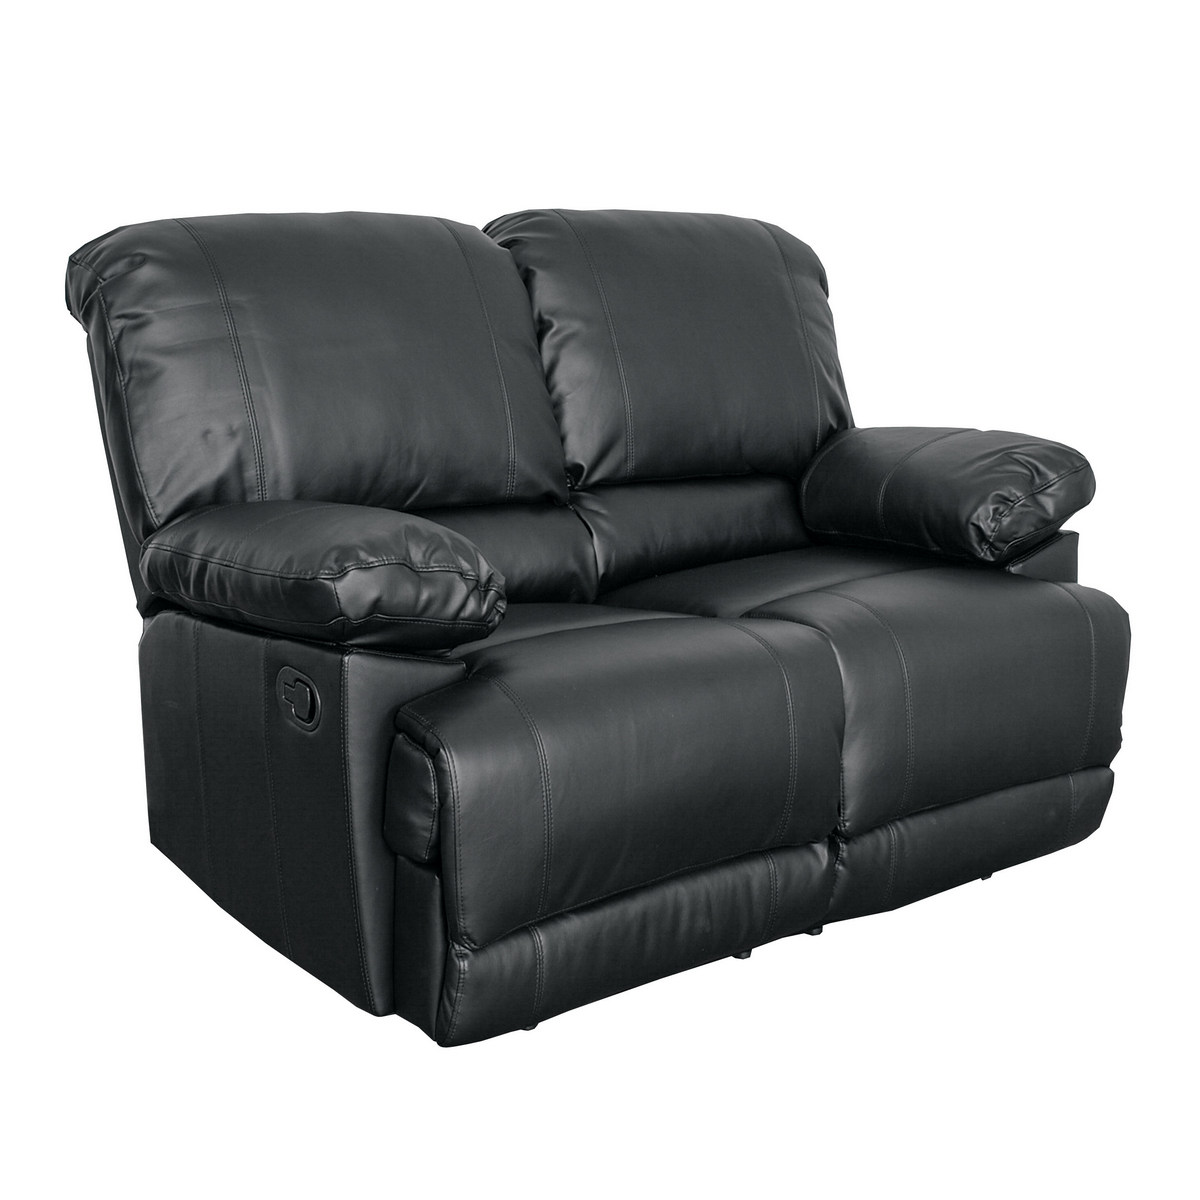 Corliving Lea Black Bonded Leather Reclining Loveseat